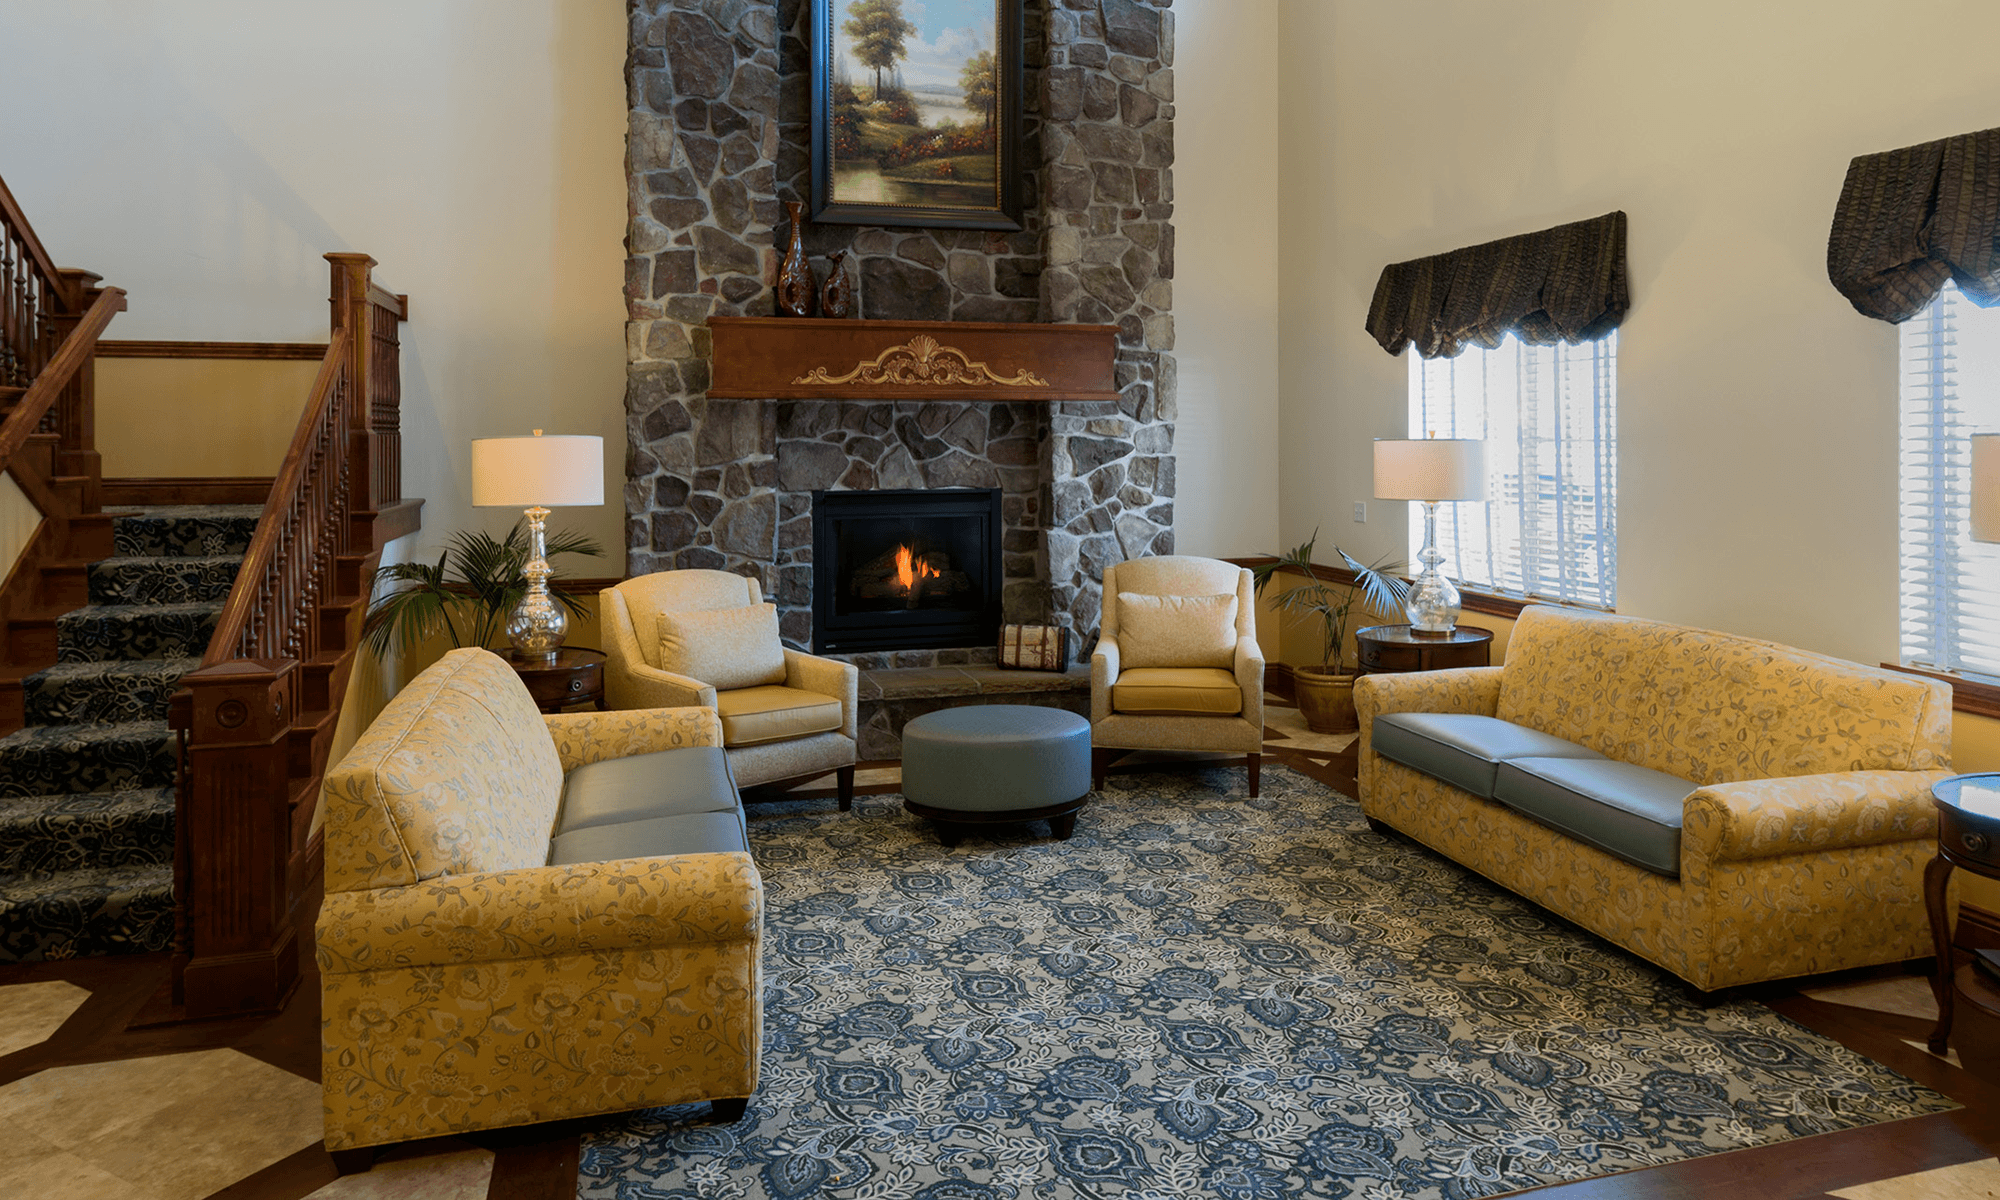 Senior living in Salt Lake City has a relaxing fireplace to keep warm